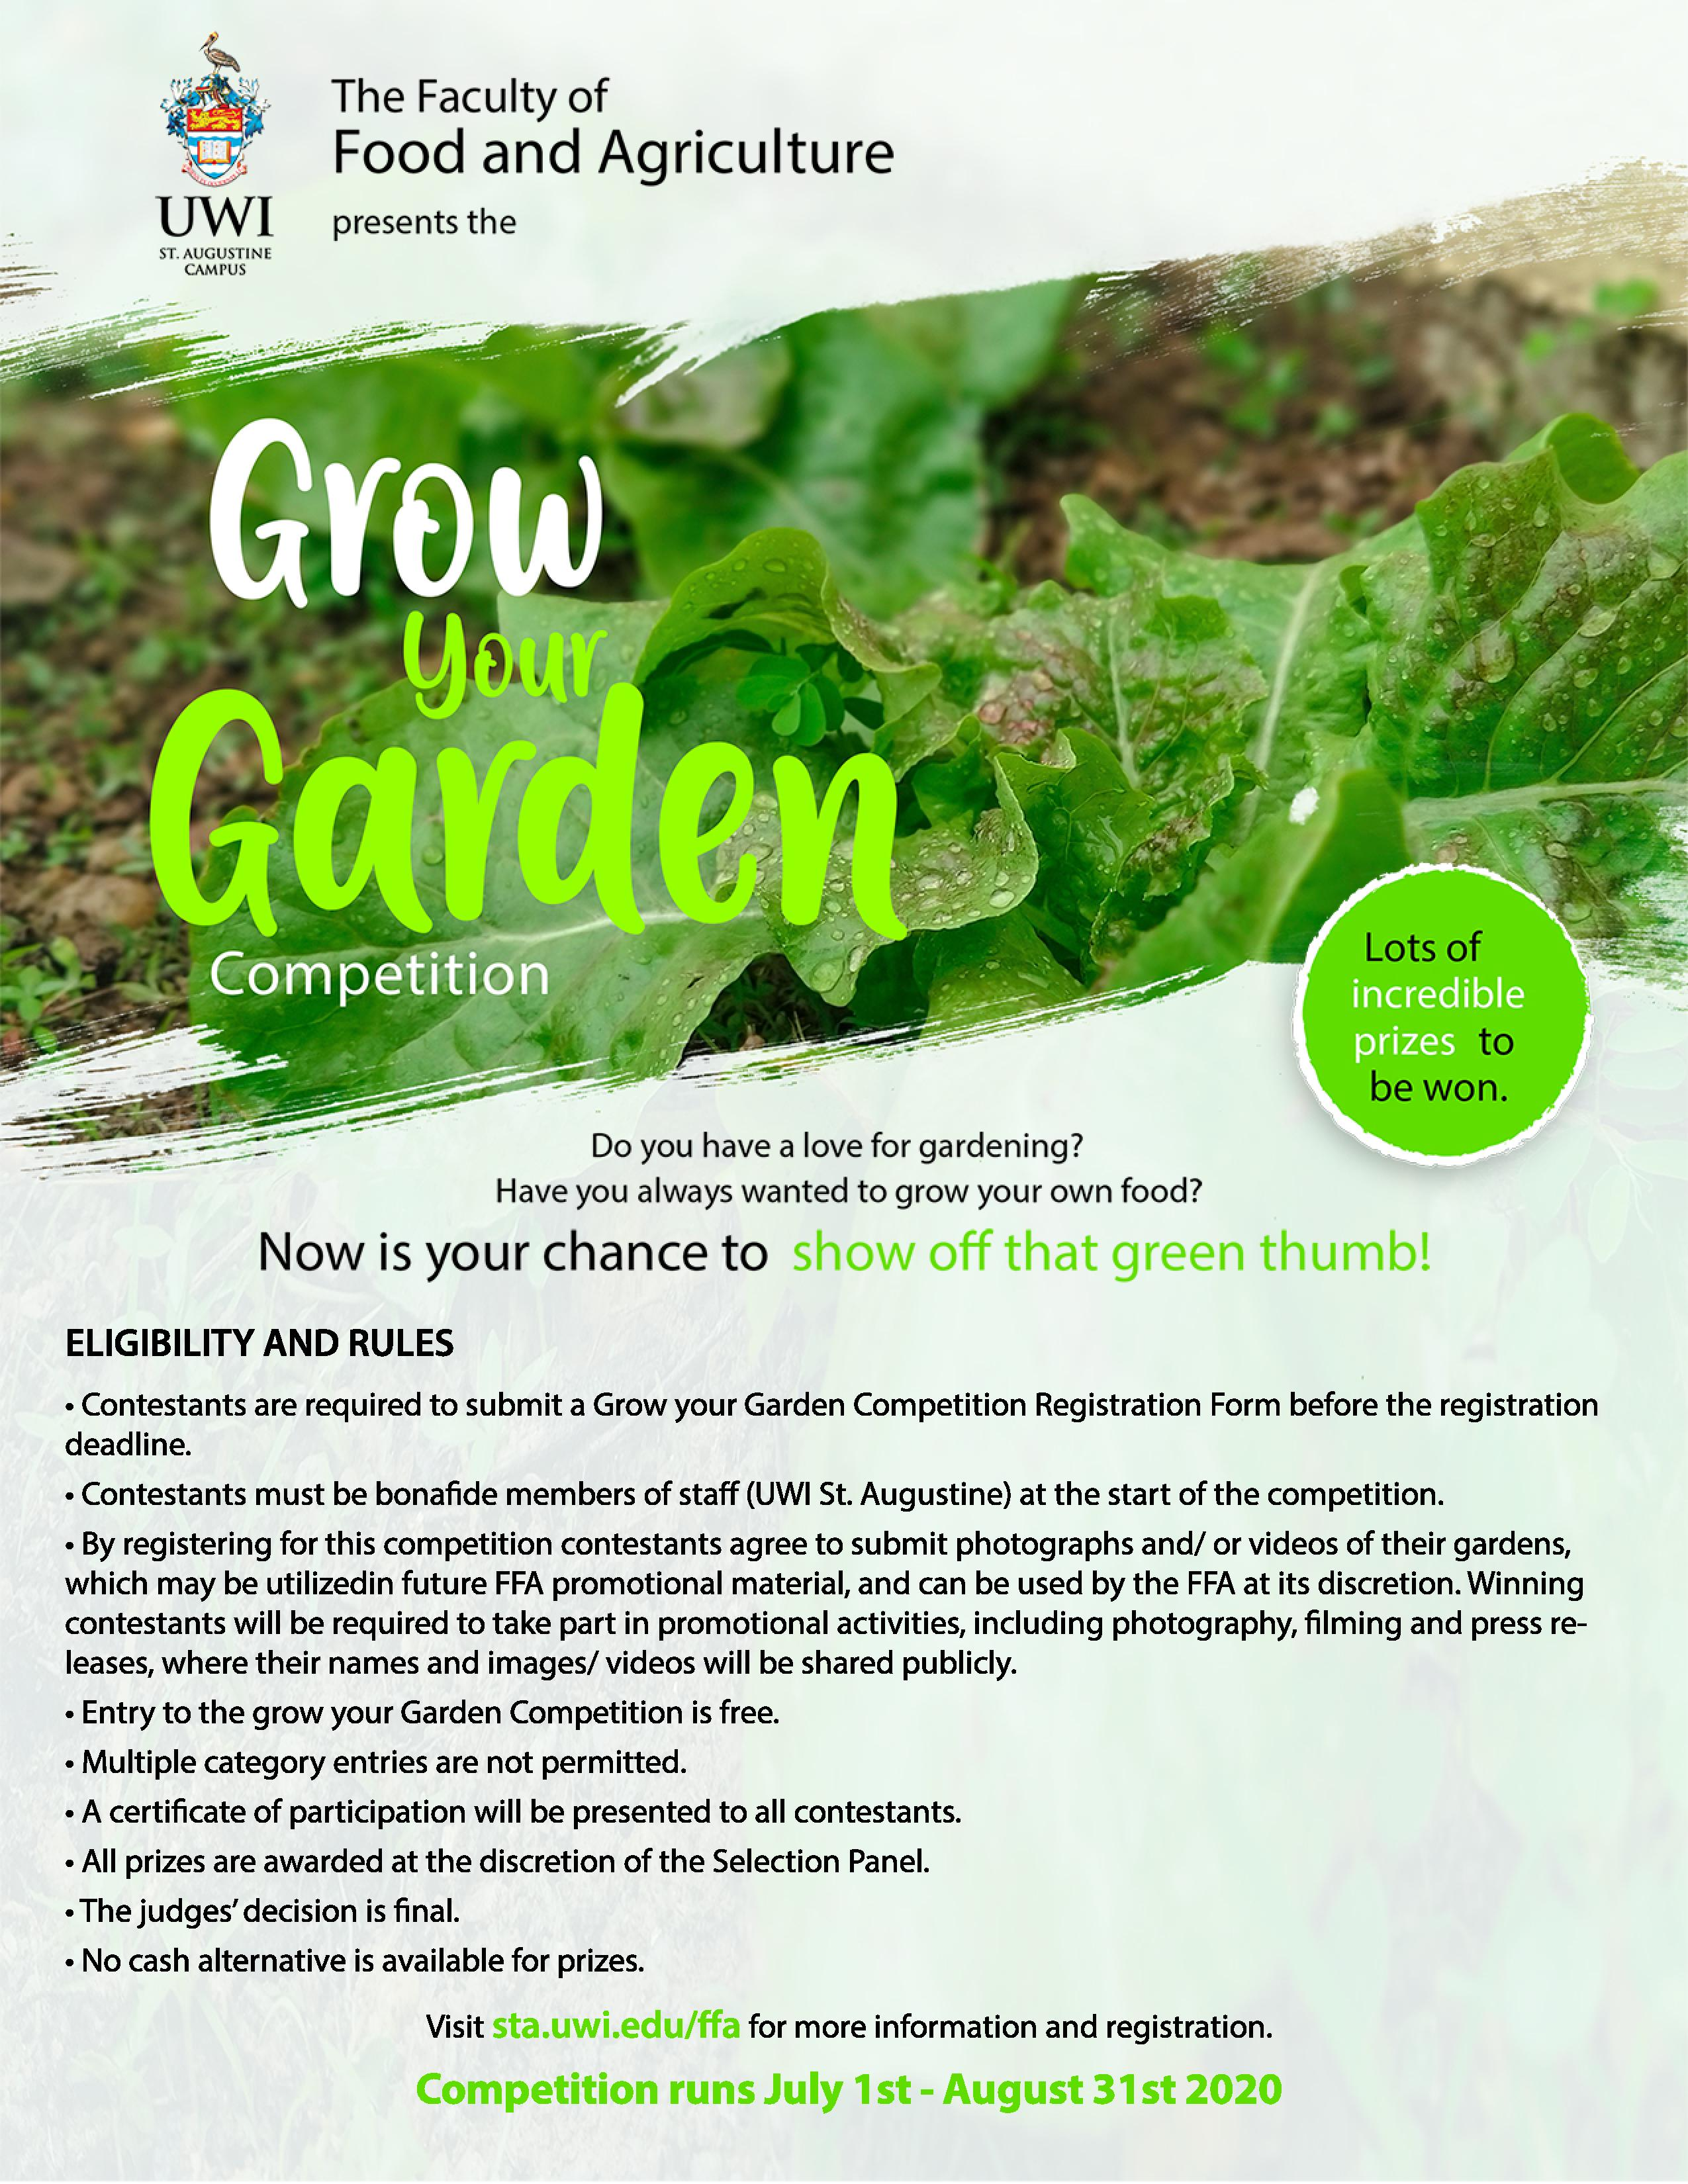 FFA Grow Your Garden Eligibility and Rules 2020